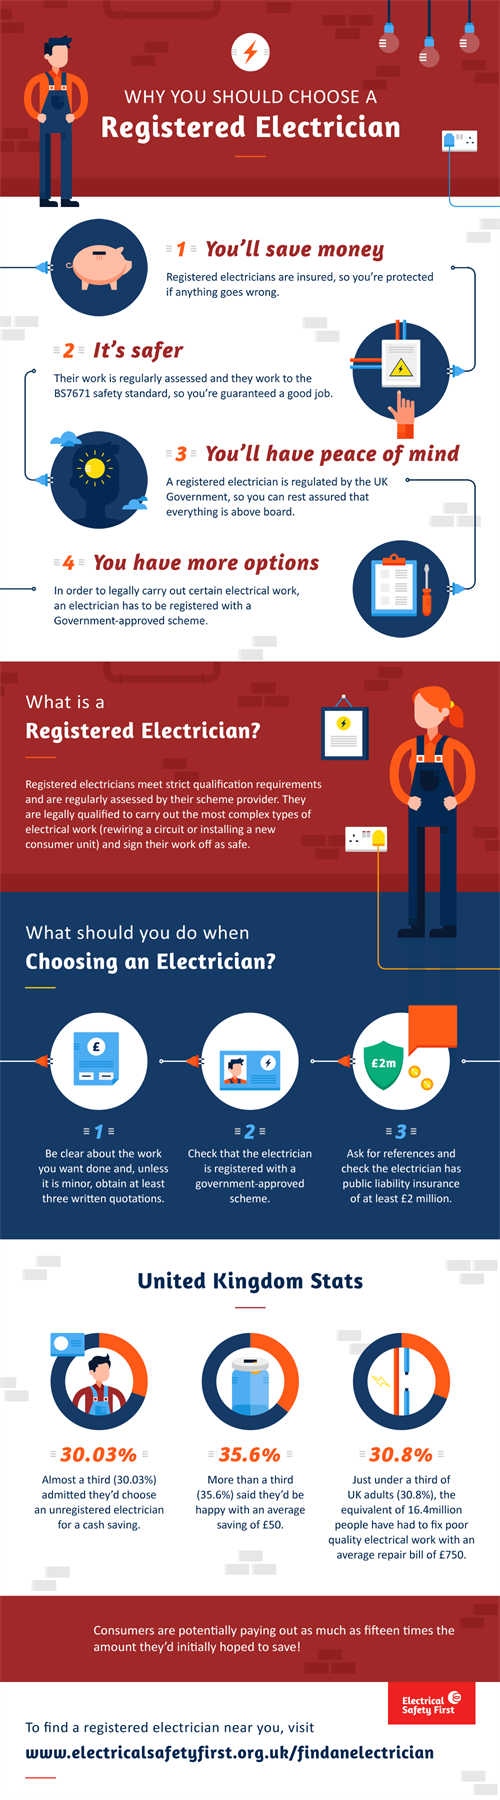 why choose a registered electrician infographic